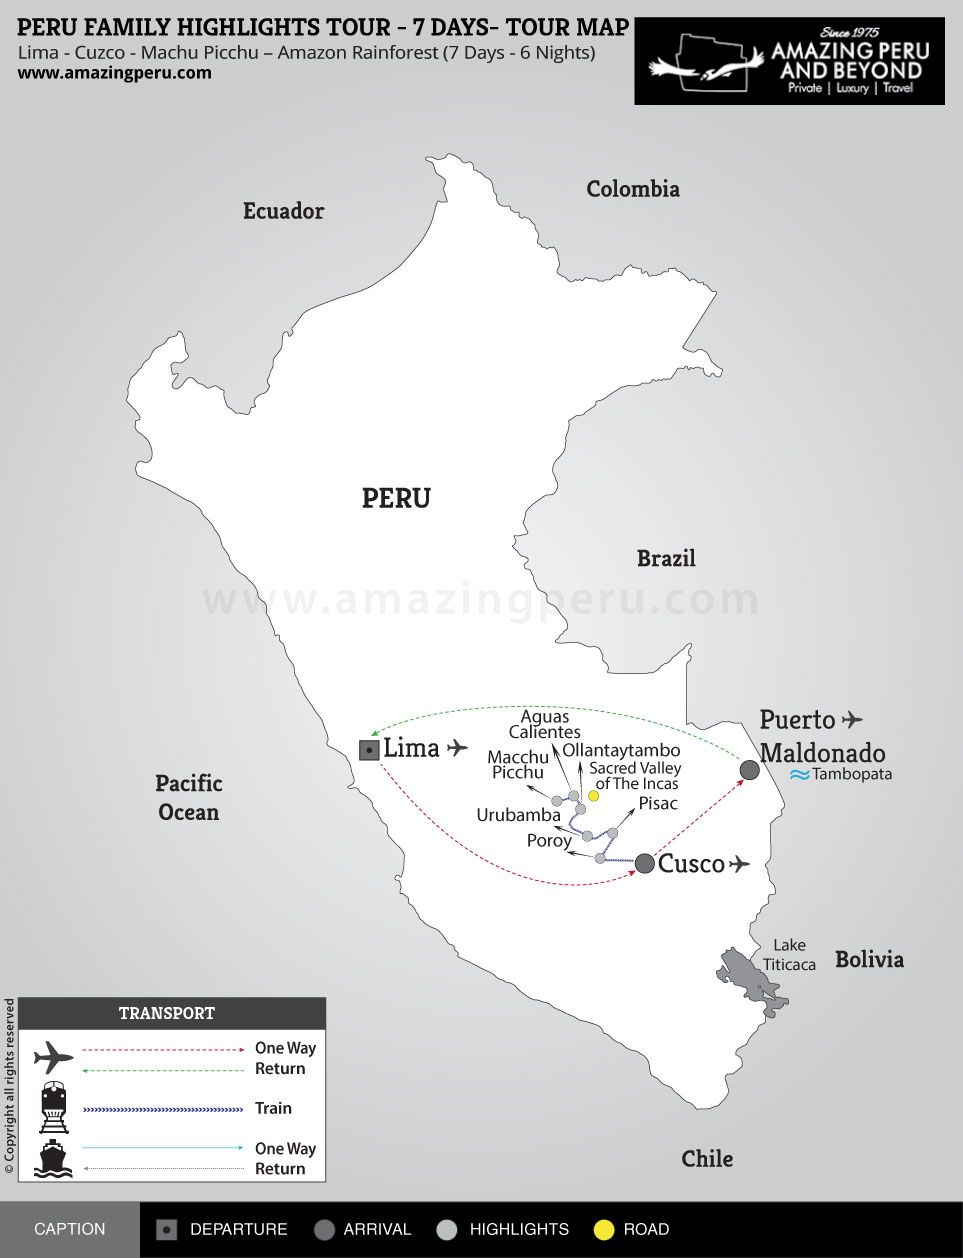 tour map:Peru Family Highlights Tour - 7 days - 7 days / 6 nights.